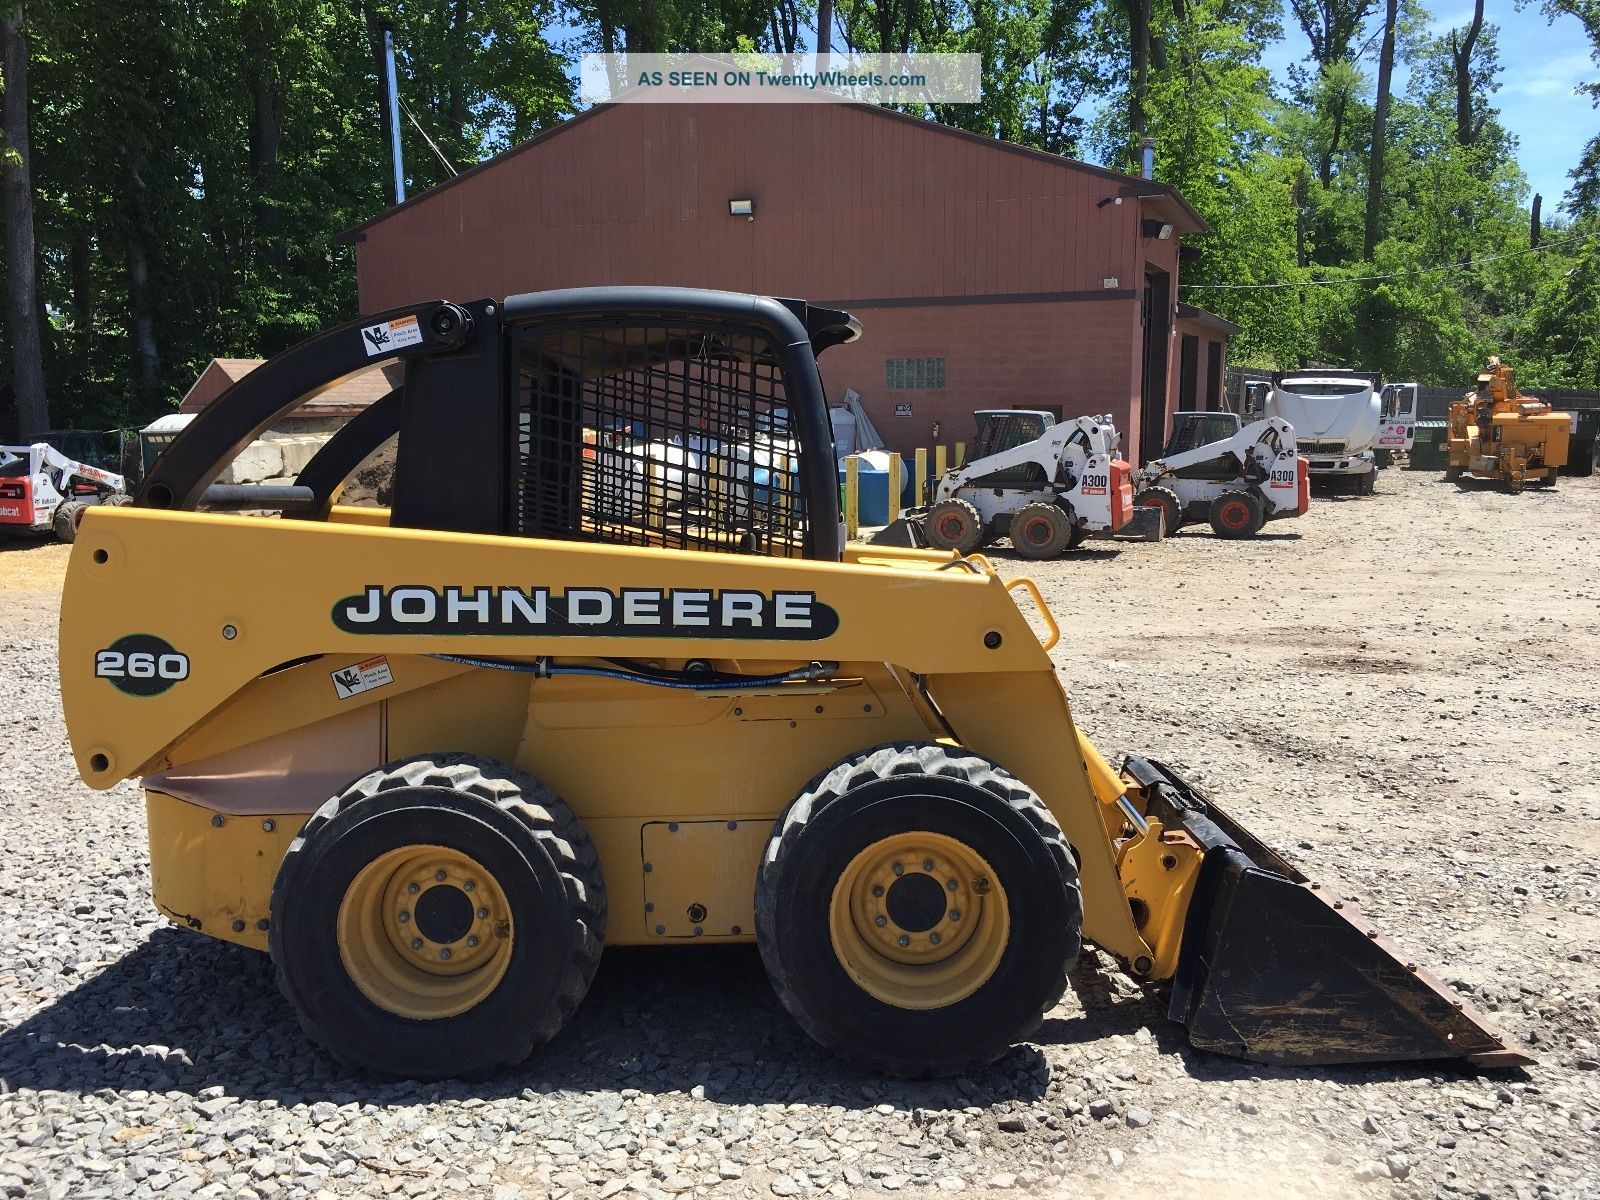 John Deere 260 Skid Steer Skid Steer Loaders photo